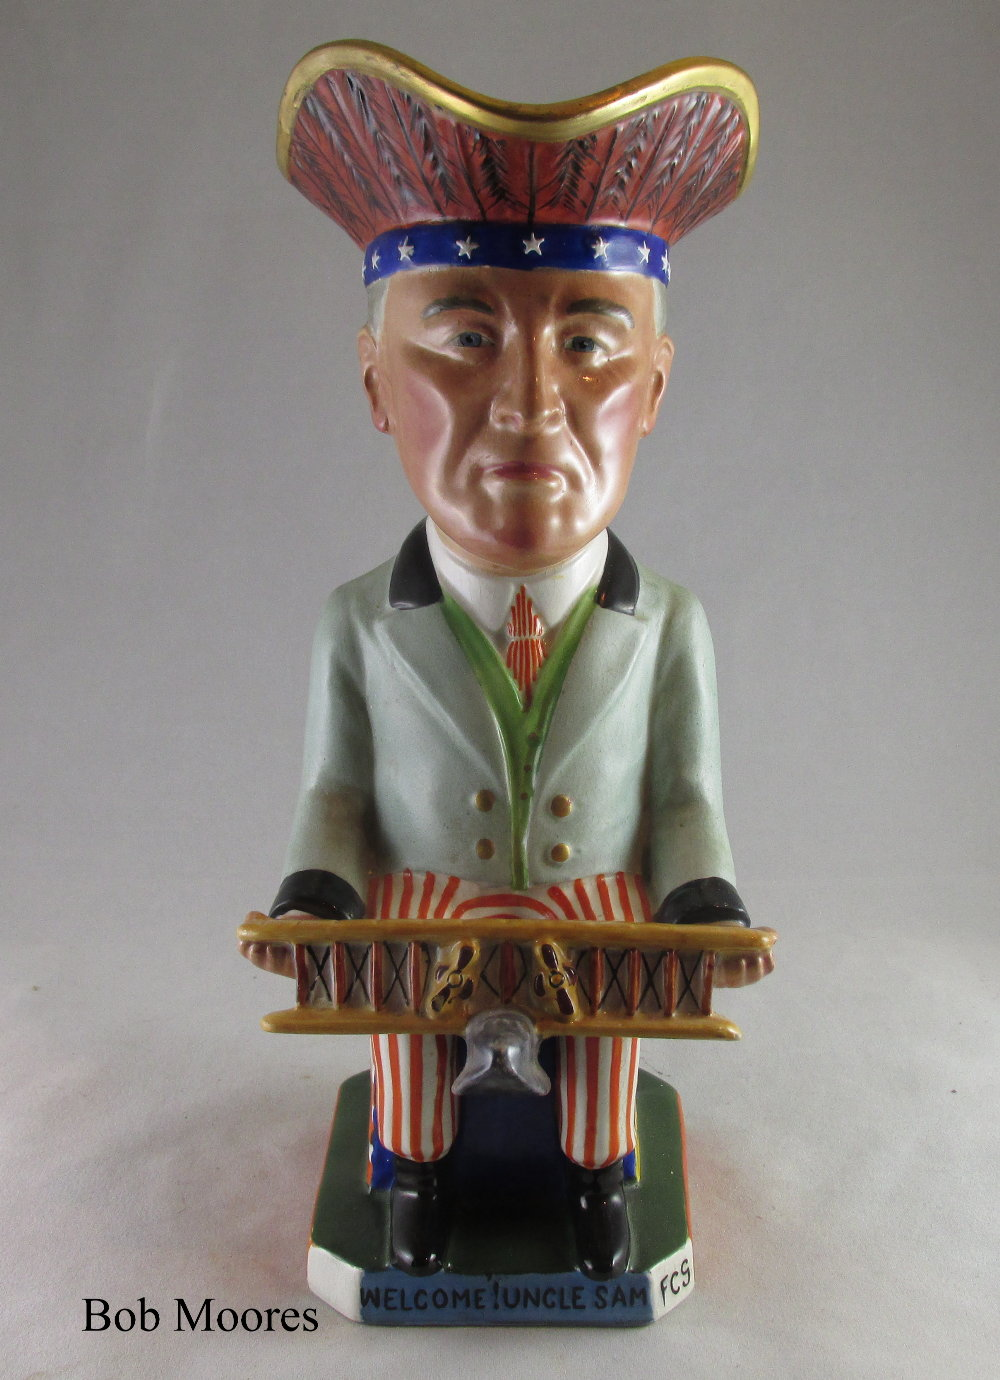 Wilkinson, Carruthers Gould President Wilson Toby jug Staffordshire c.1917